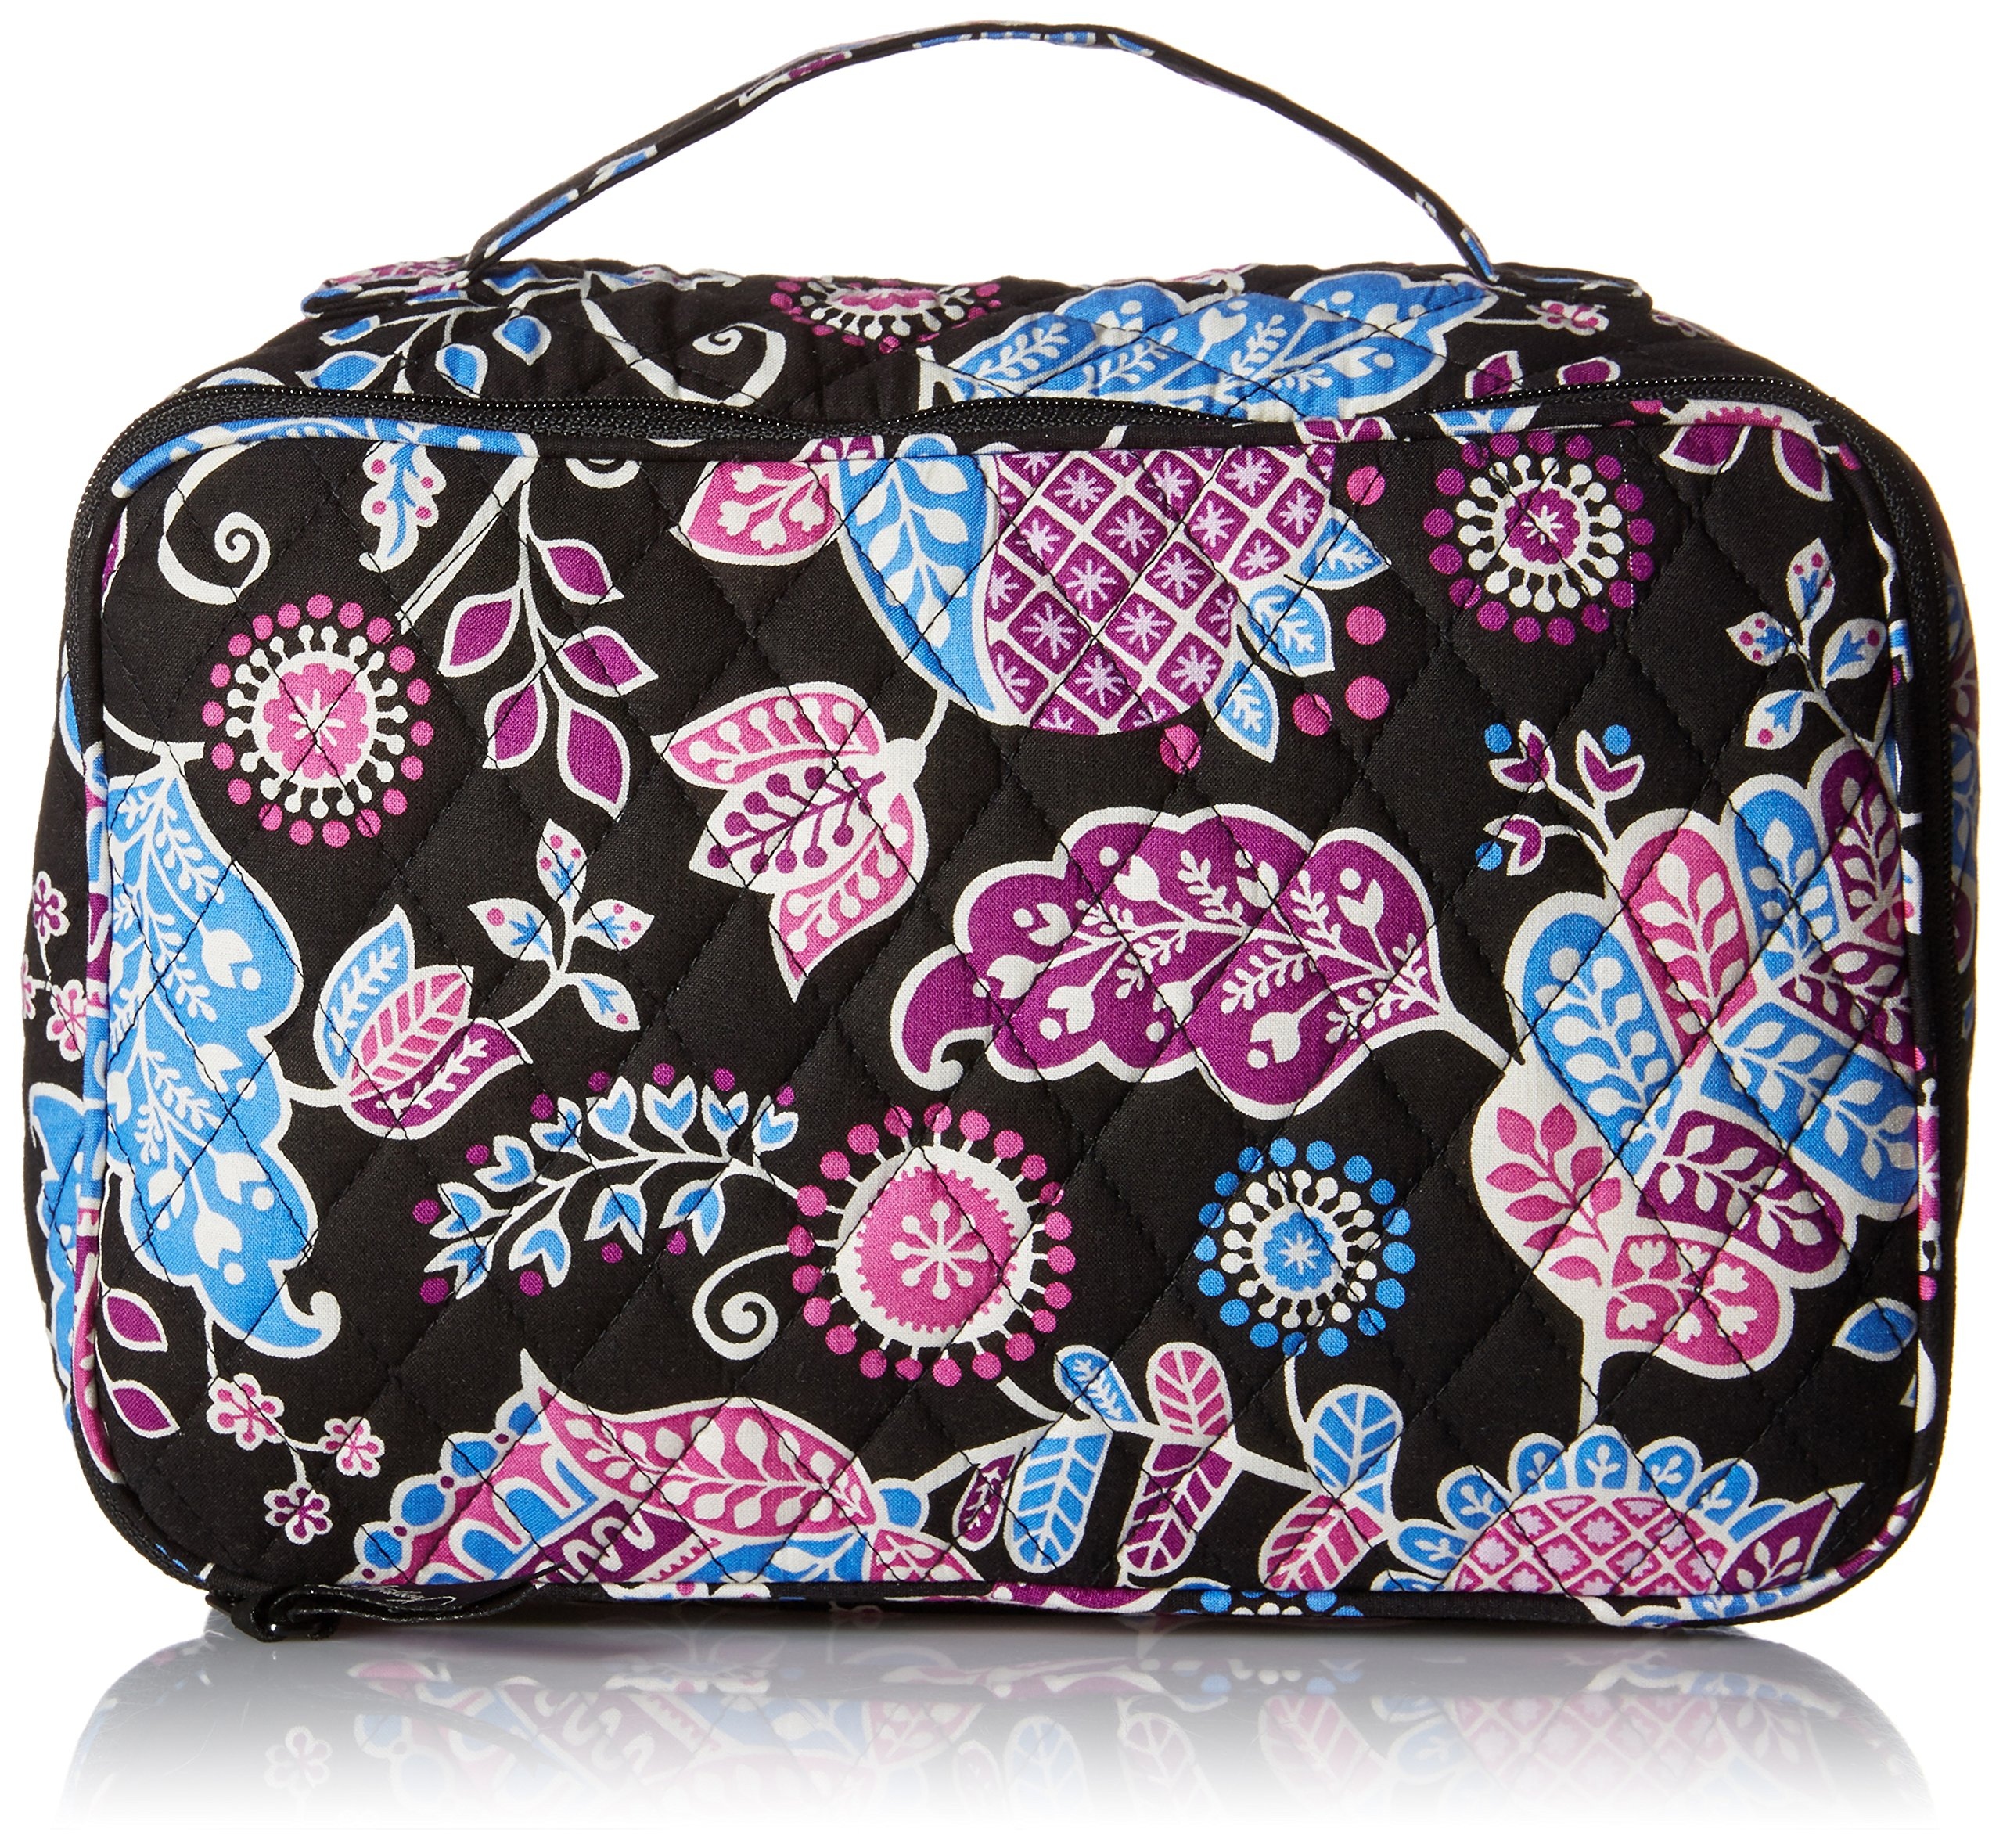 Vera Bradley Luggage Women's Large Blush & Brush Makeup Case Alpine Floral Cosmetic Bag